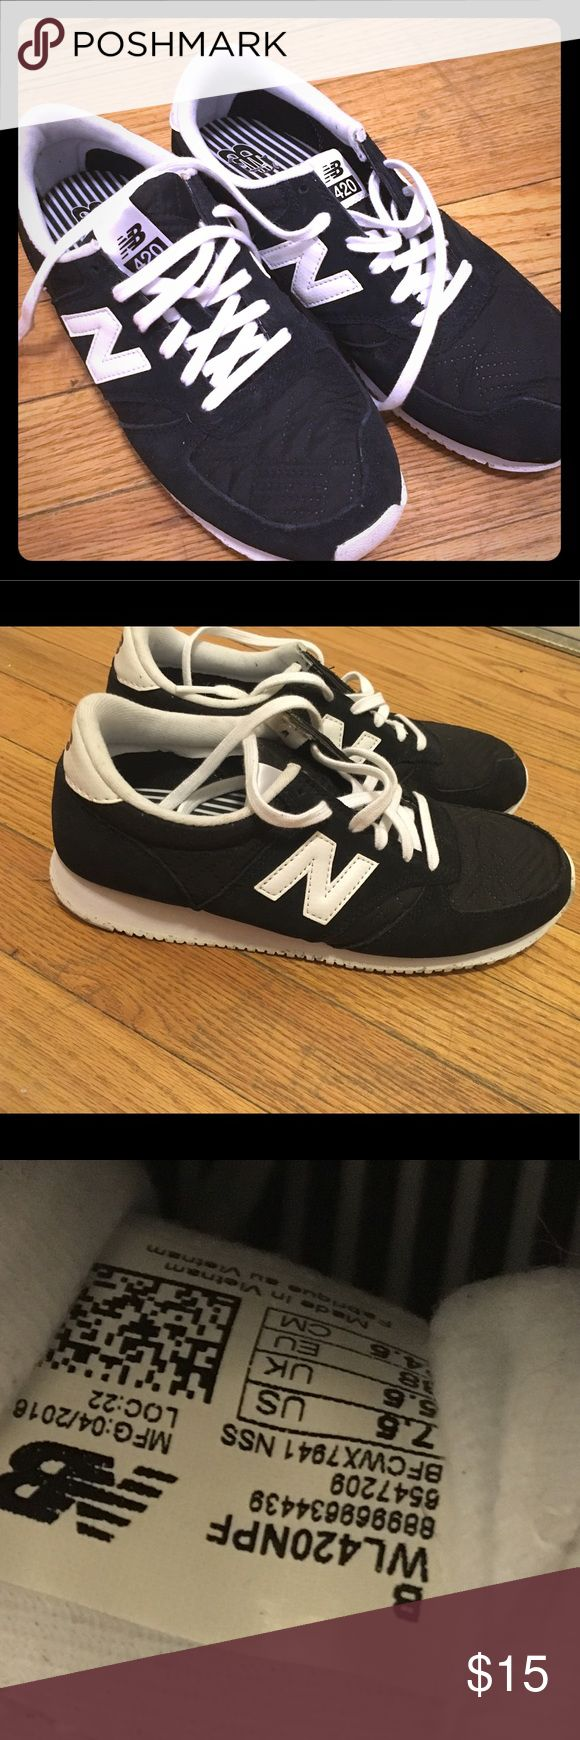 New balance 420 women's sneakers Only worn a few times and bought new. Some minor wear on the soles and interior. Good used condition, see photos for details! New Balance Shoes Sneakers